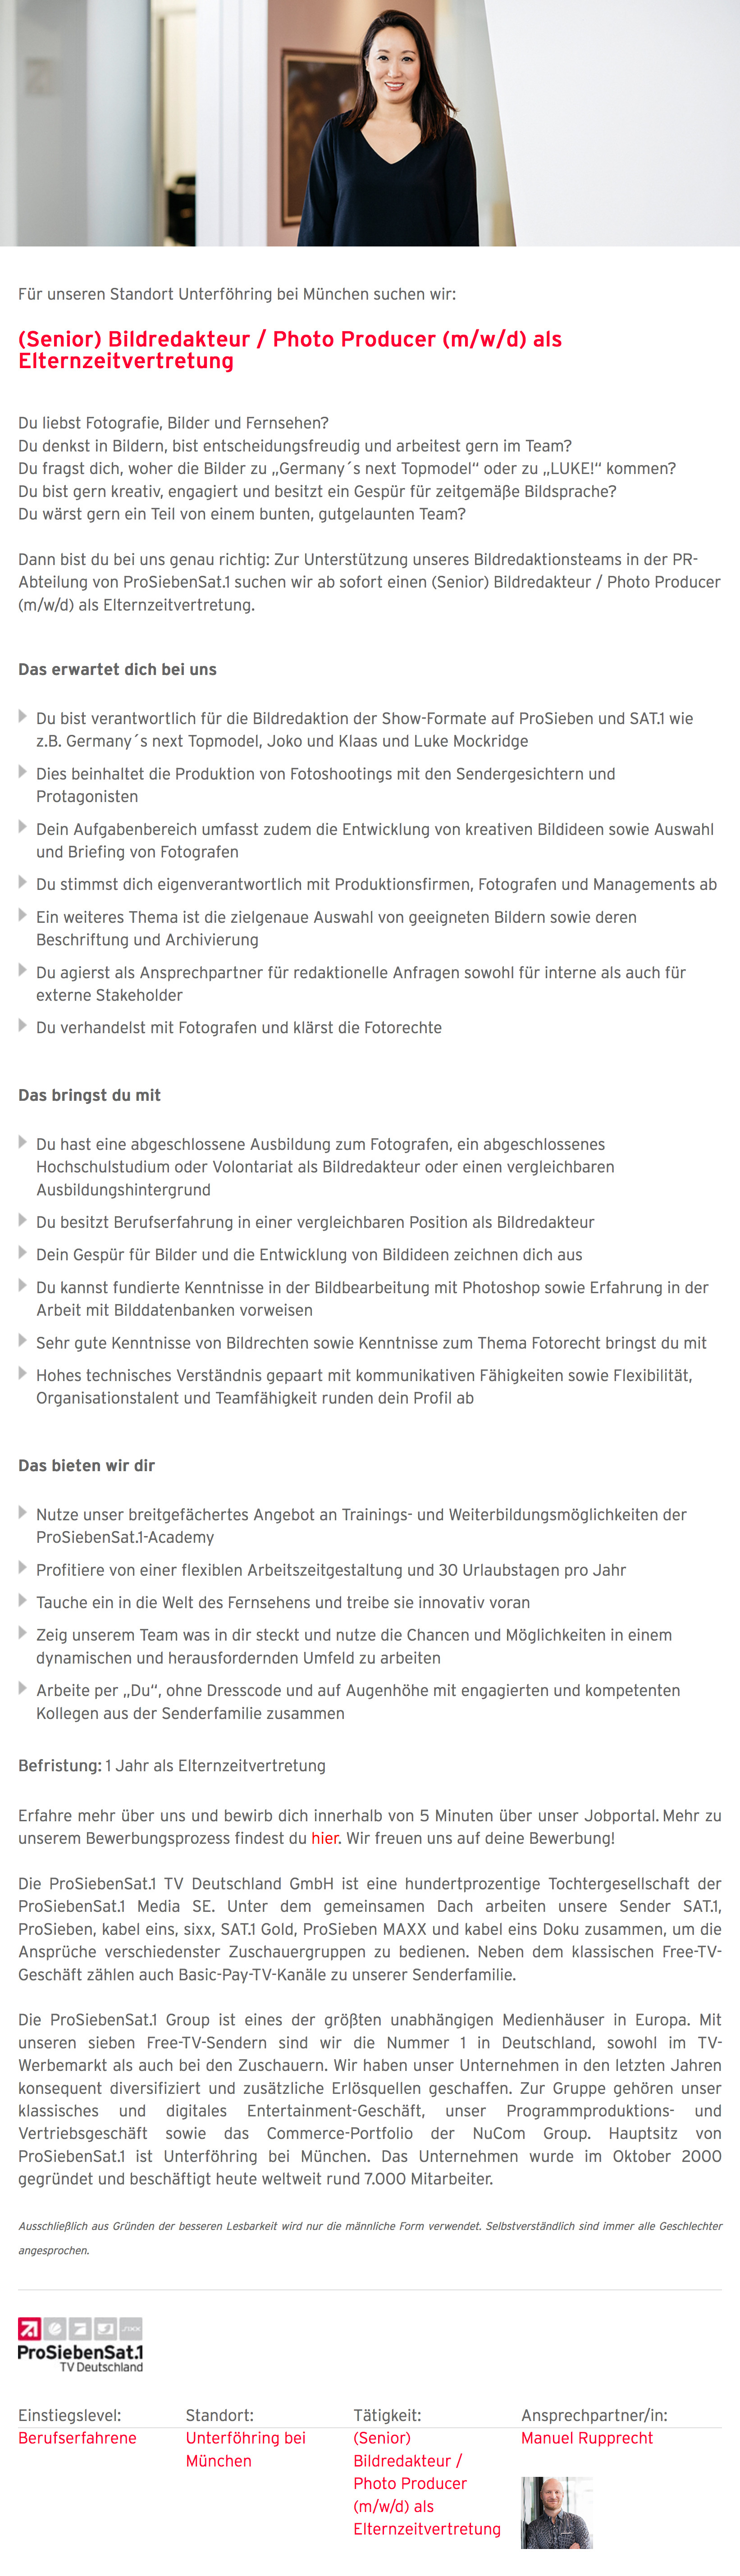 (Senior) Bildredakteur / Photo Producer (m/w/d) als Elternzeitvertretung